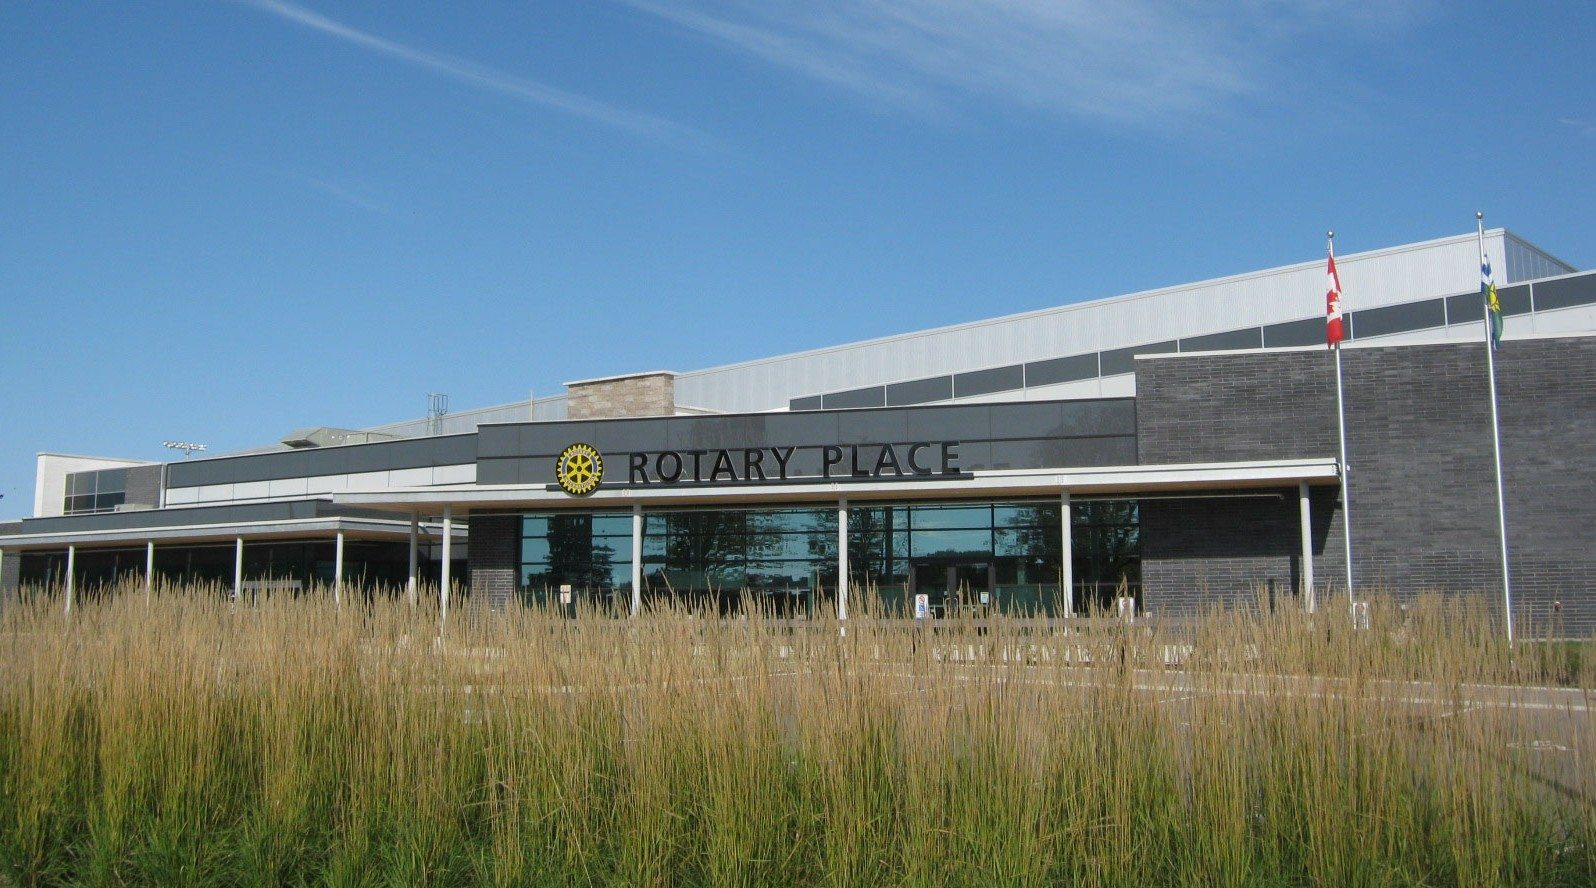 Rotary Place